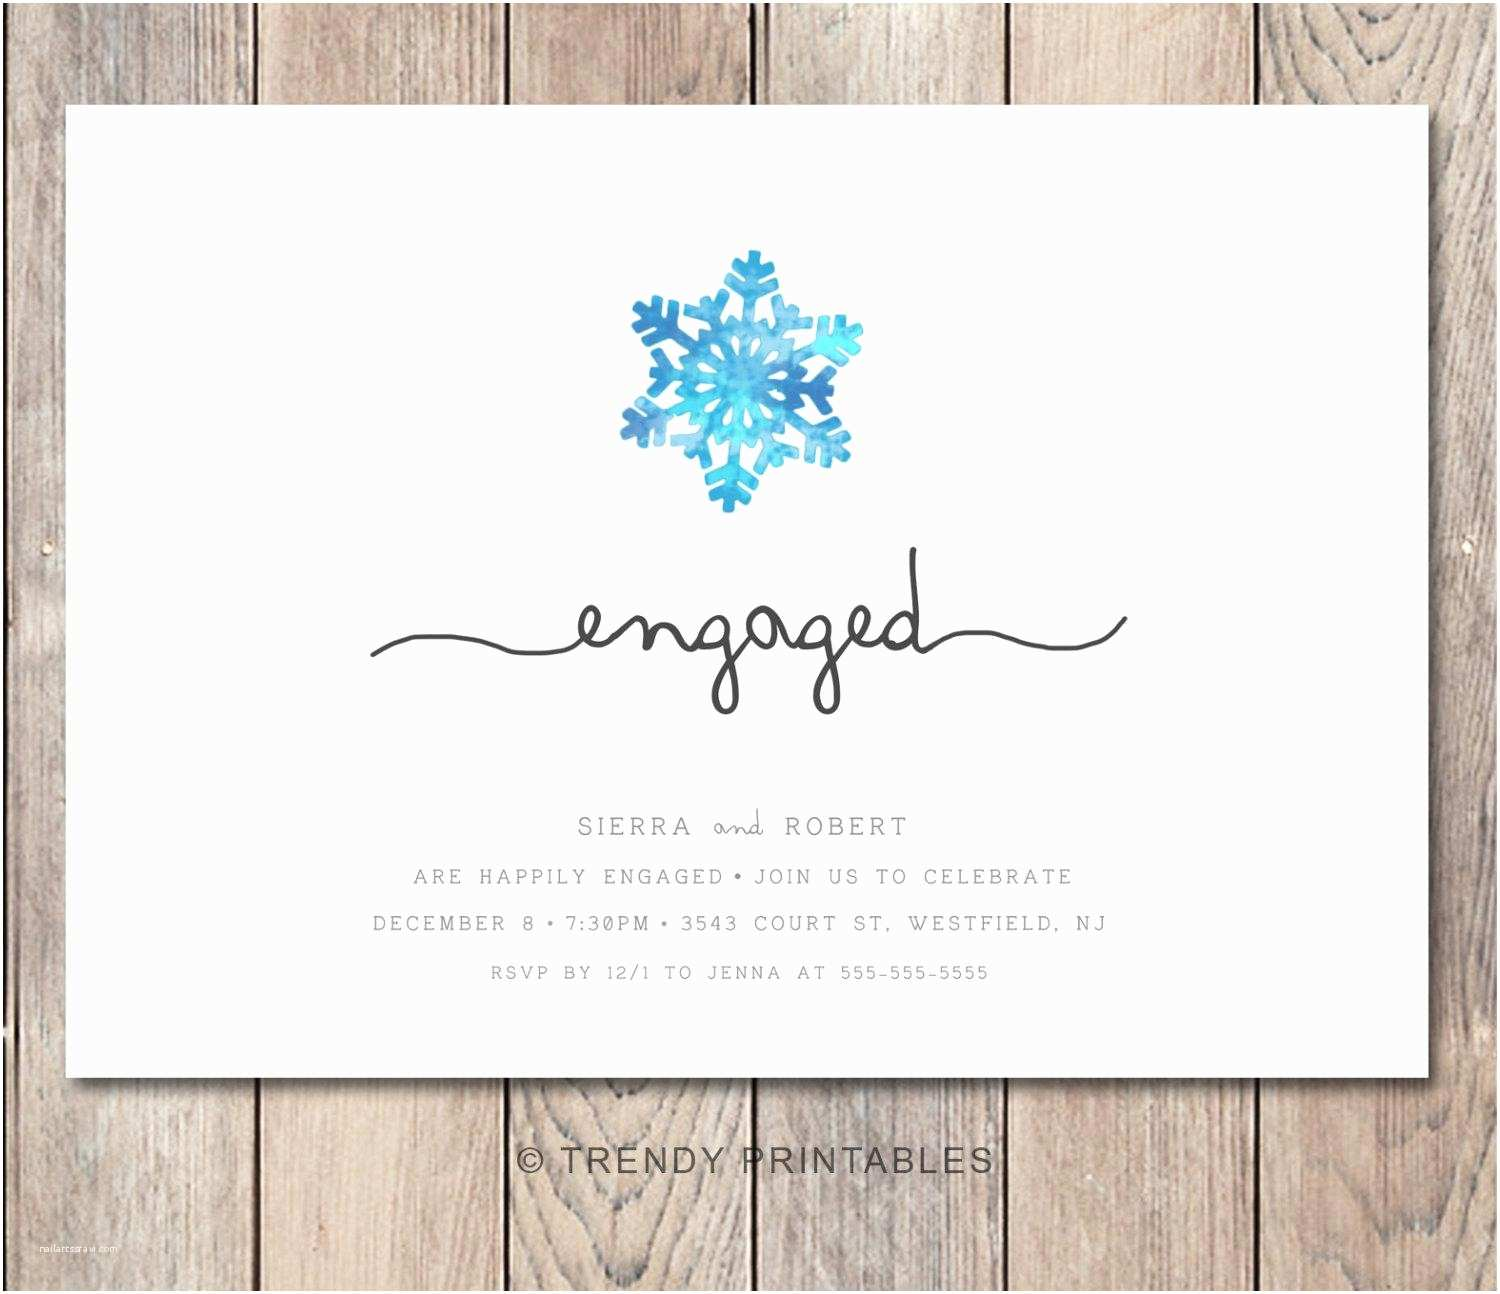 Engagement Party Invitations Templates Engagement Party Invitation Templates – Gangcraft